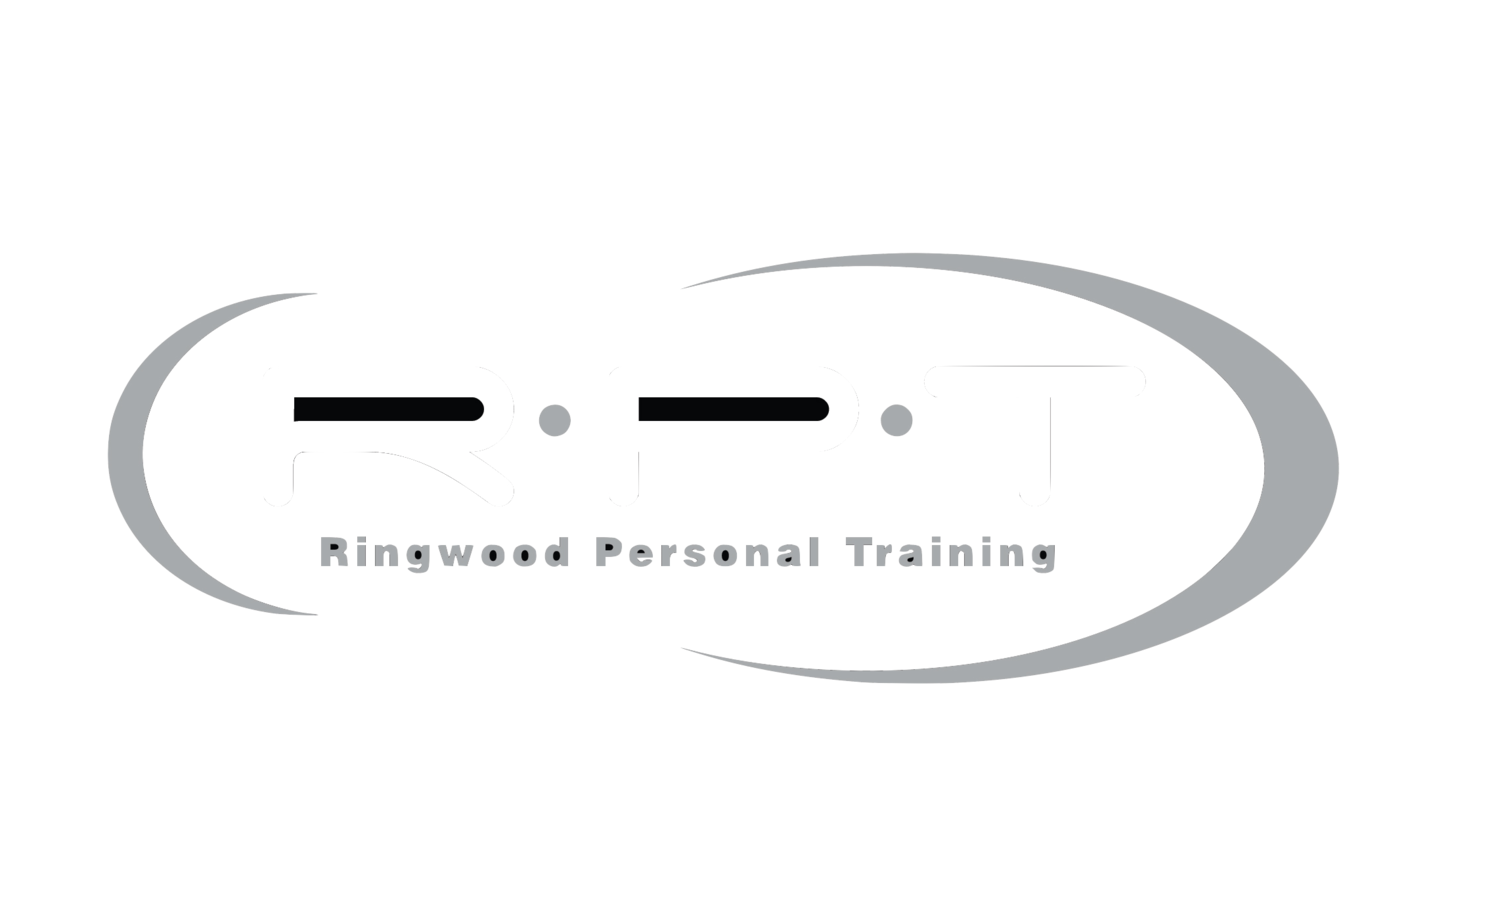 Ringwood Personal Training